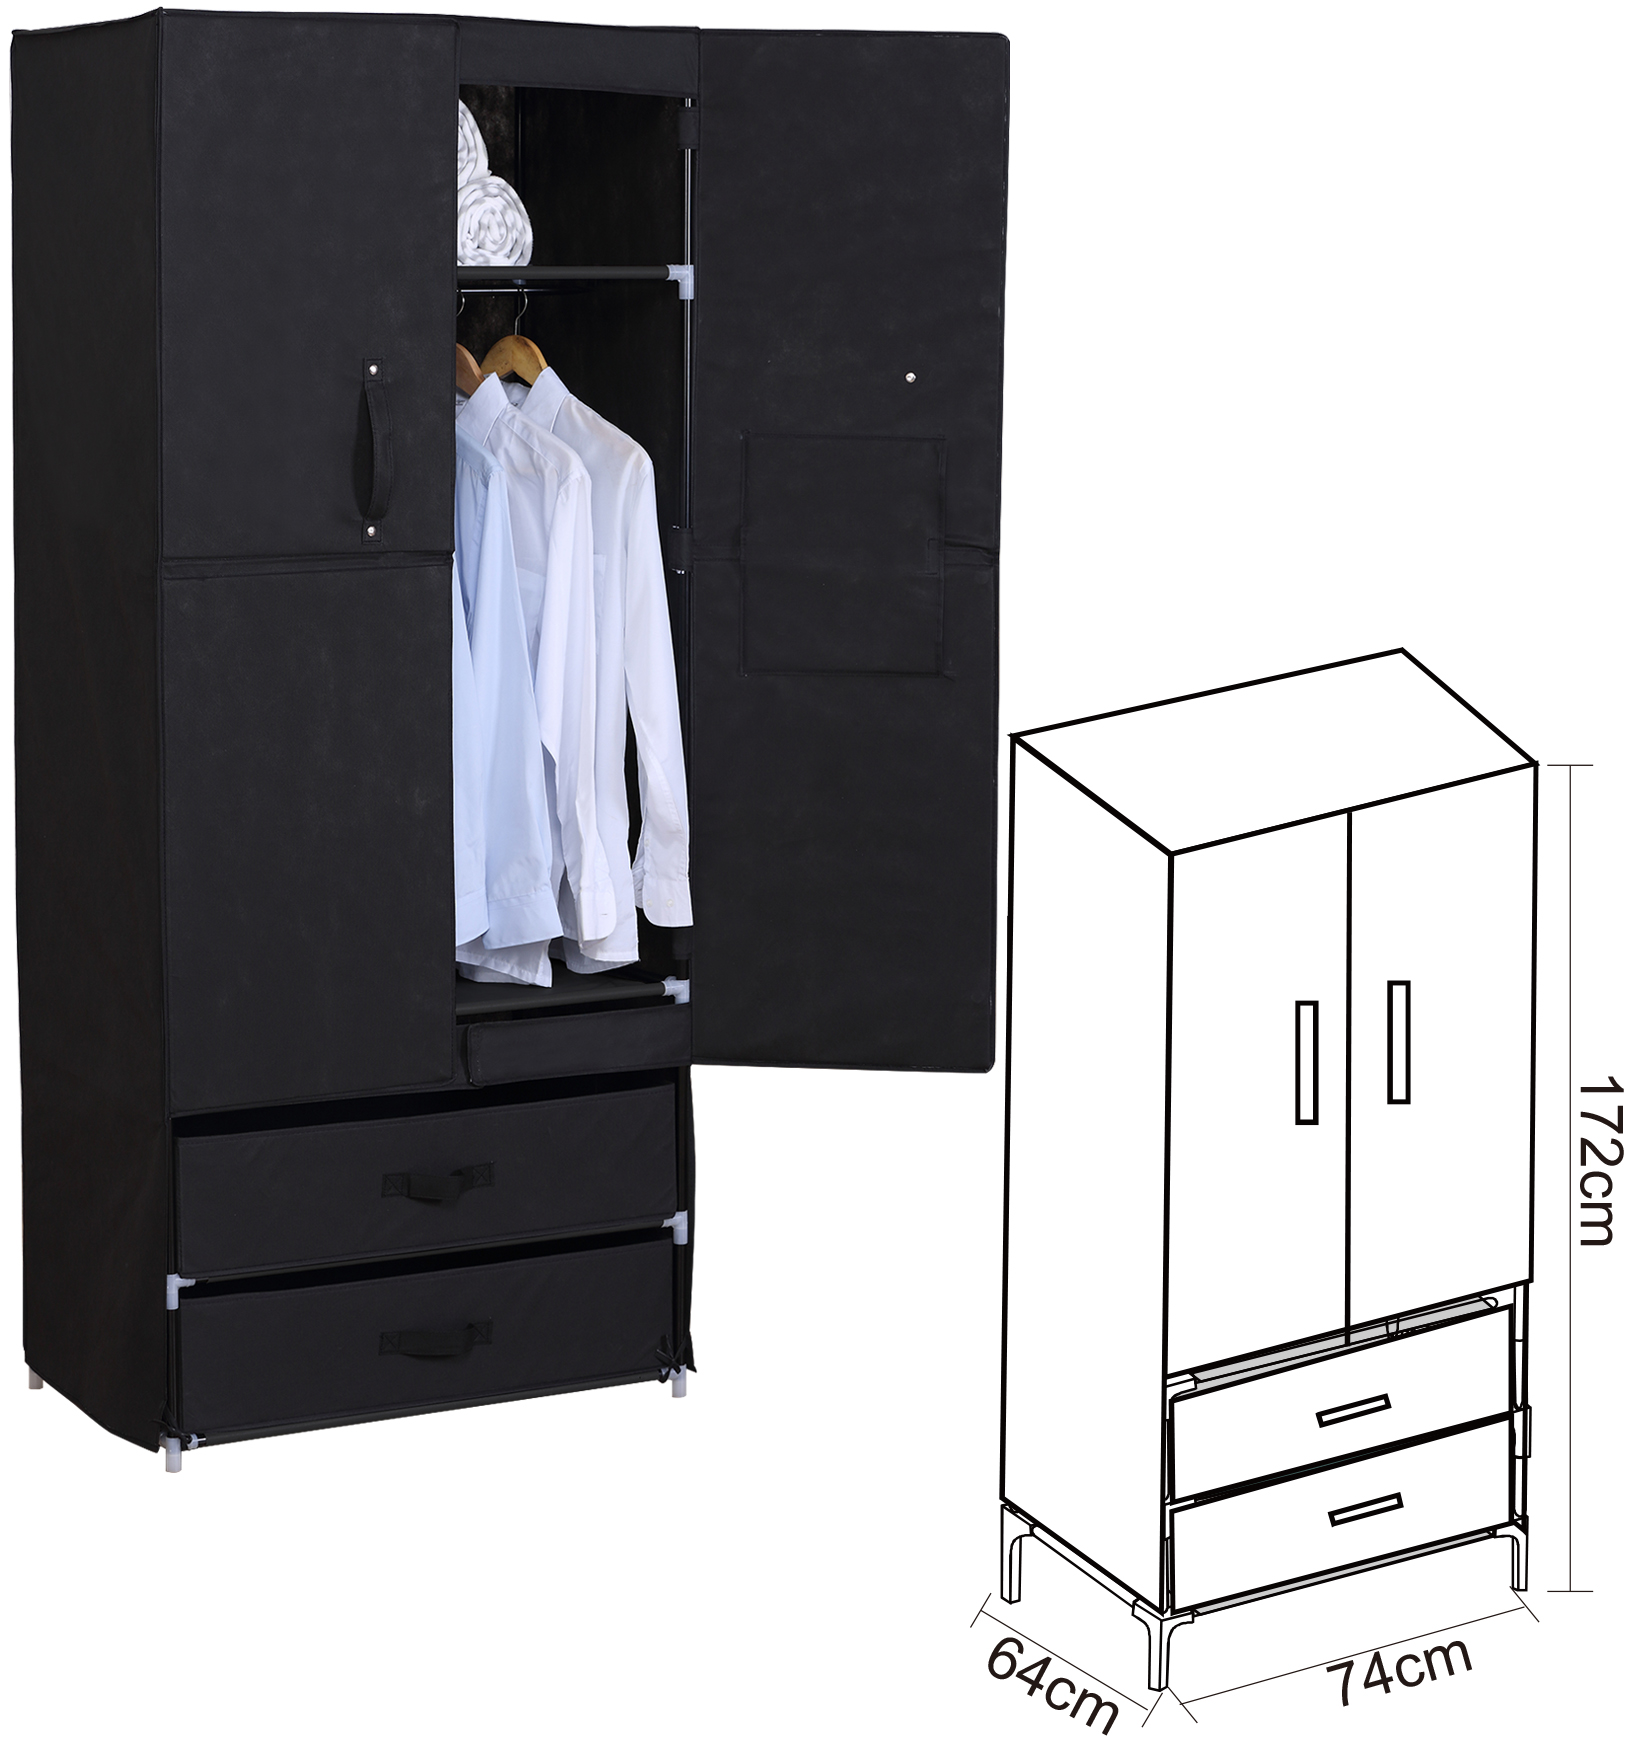 faltschrank kleiderschrank garderobenschrank. Black Bedroom Furniture Sets. Home Design Ideas